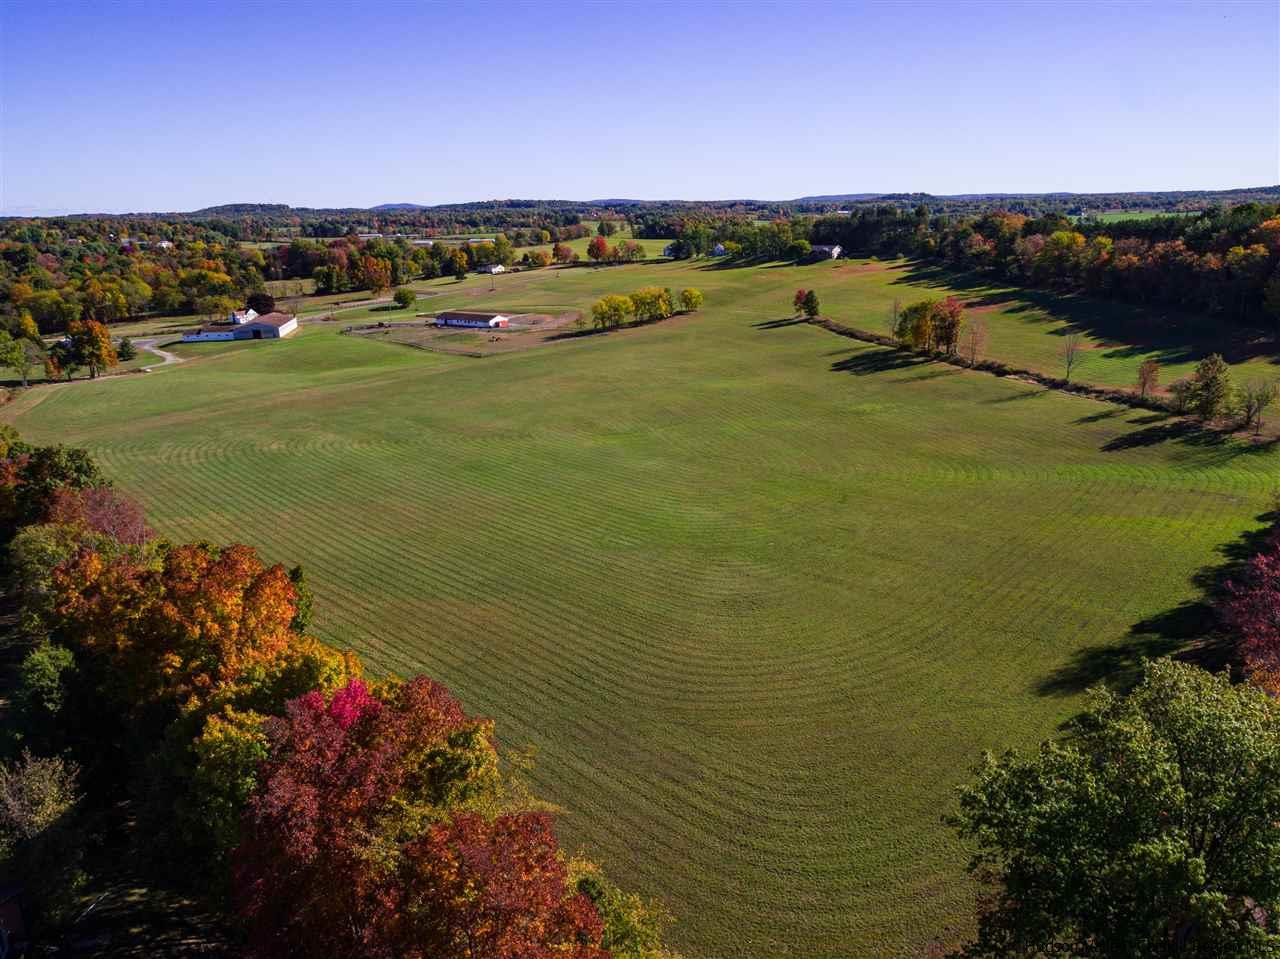 Farm / Agriculture for Sale at 814 Sand Hill Road 814 Sand Hill Road Gardiner, New York 12525 United States